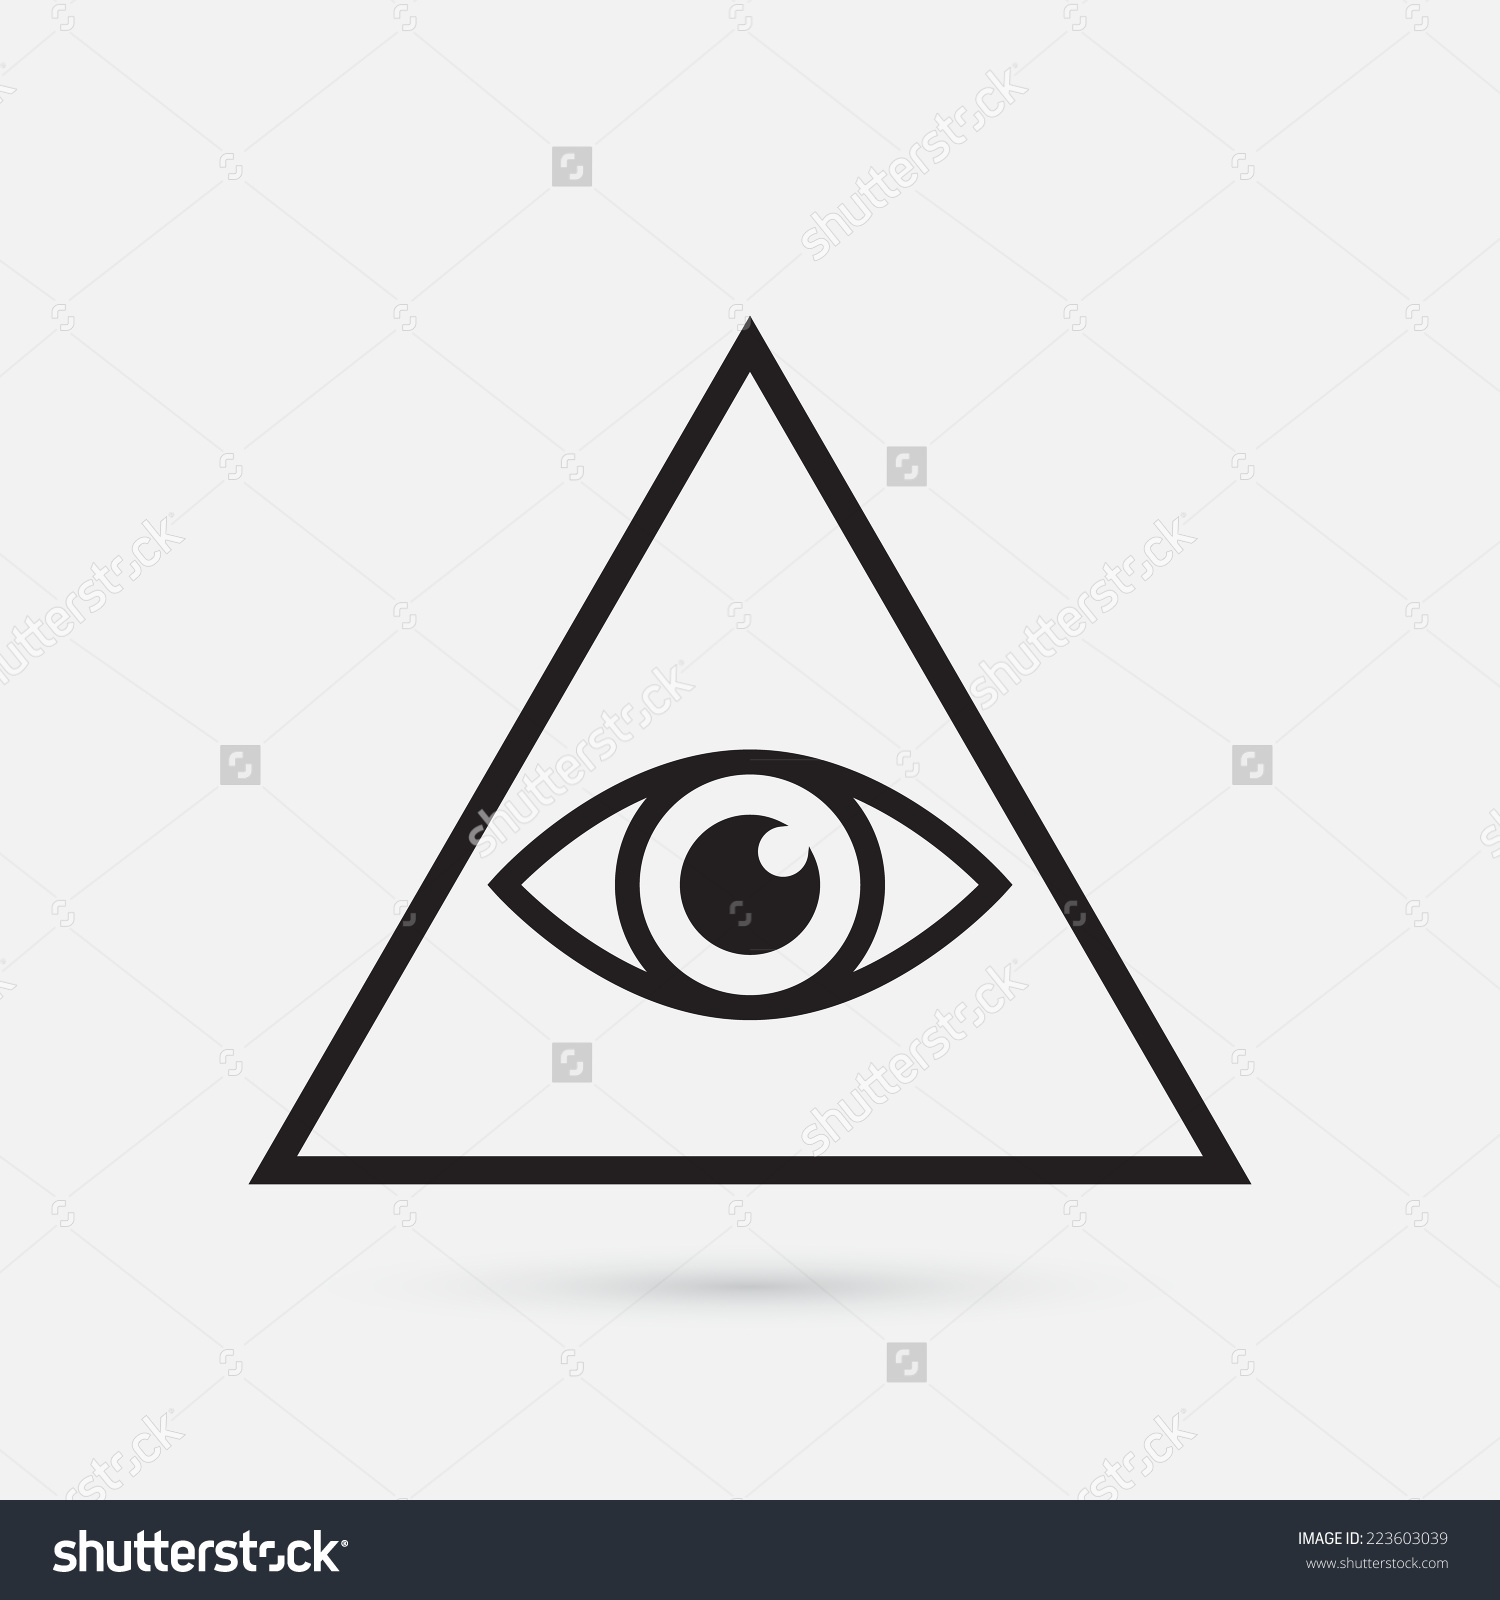 Collection of Illuminati clipart.